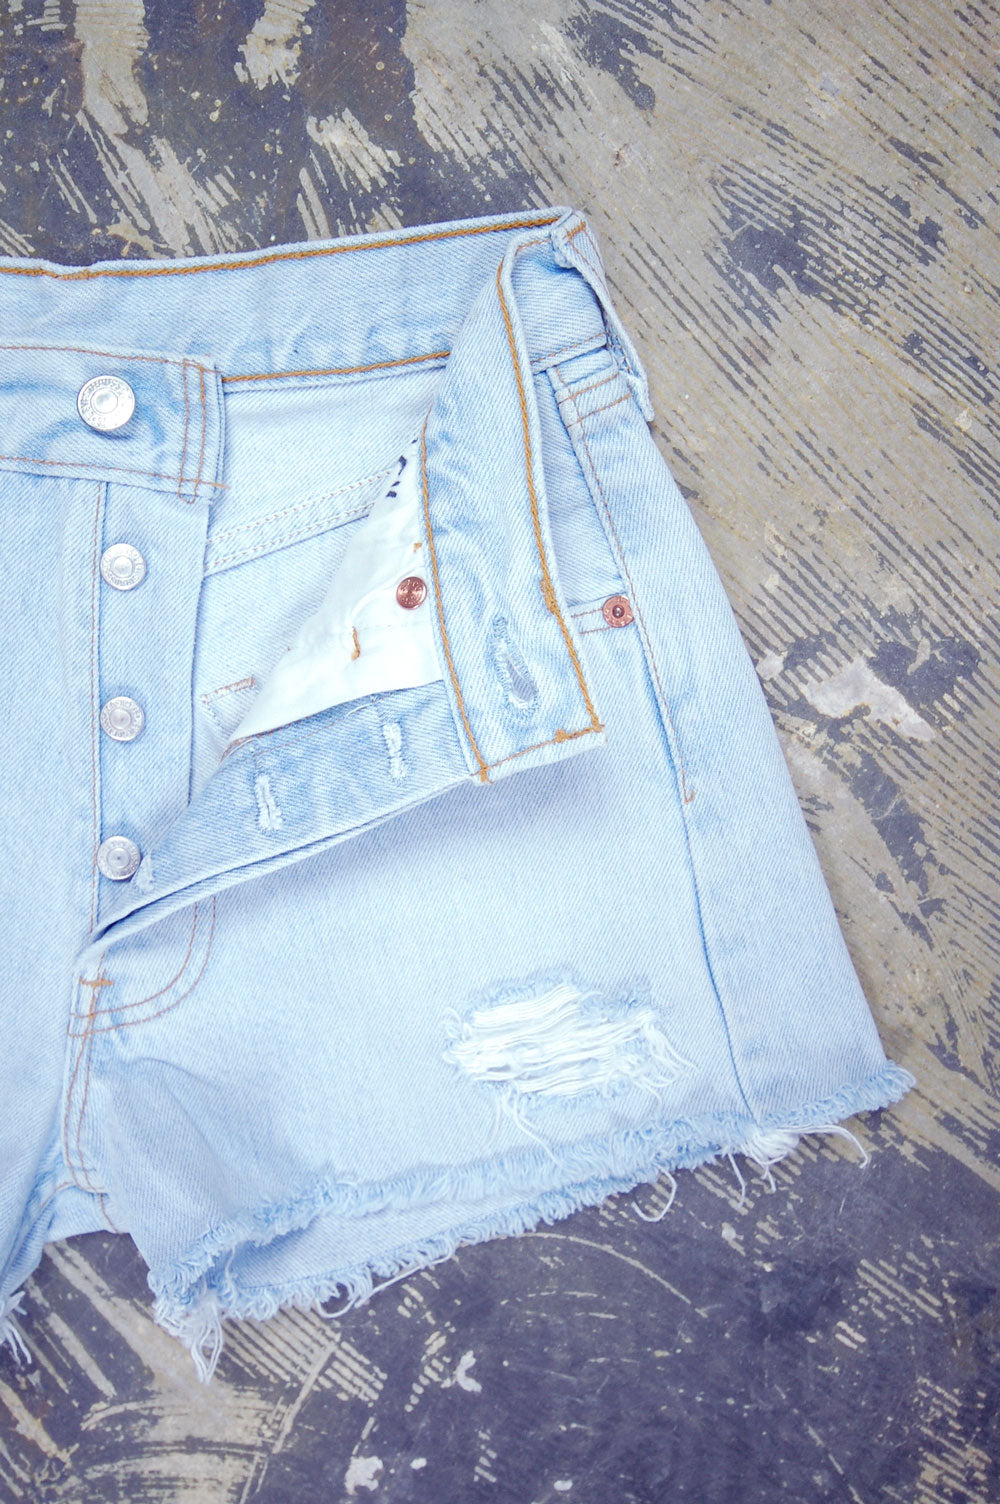 Vintage Levi's 501 Chain-Stitched Tulips Artwork Feathered Cutoff Denim Shorts